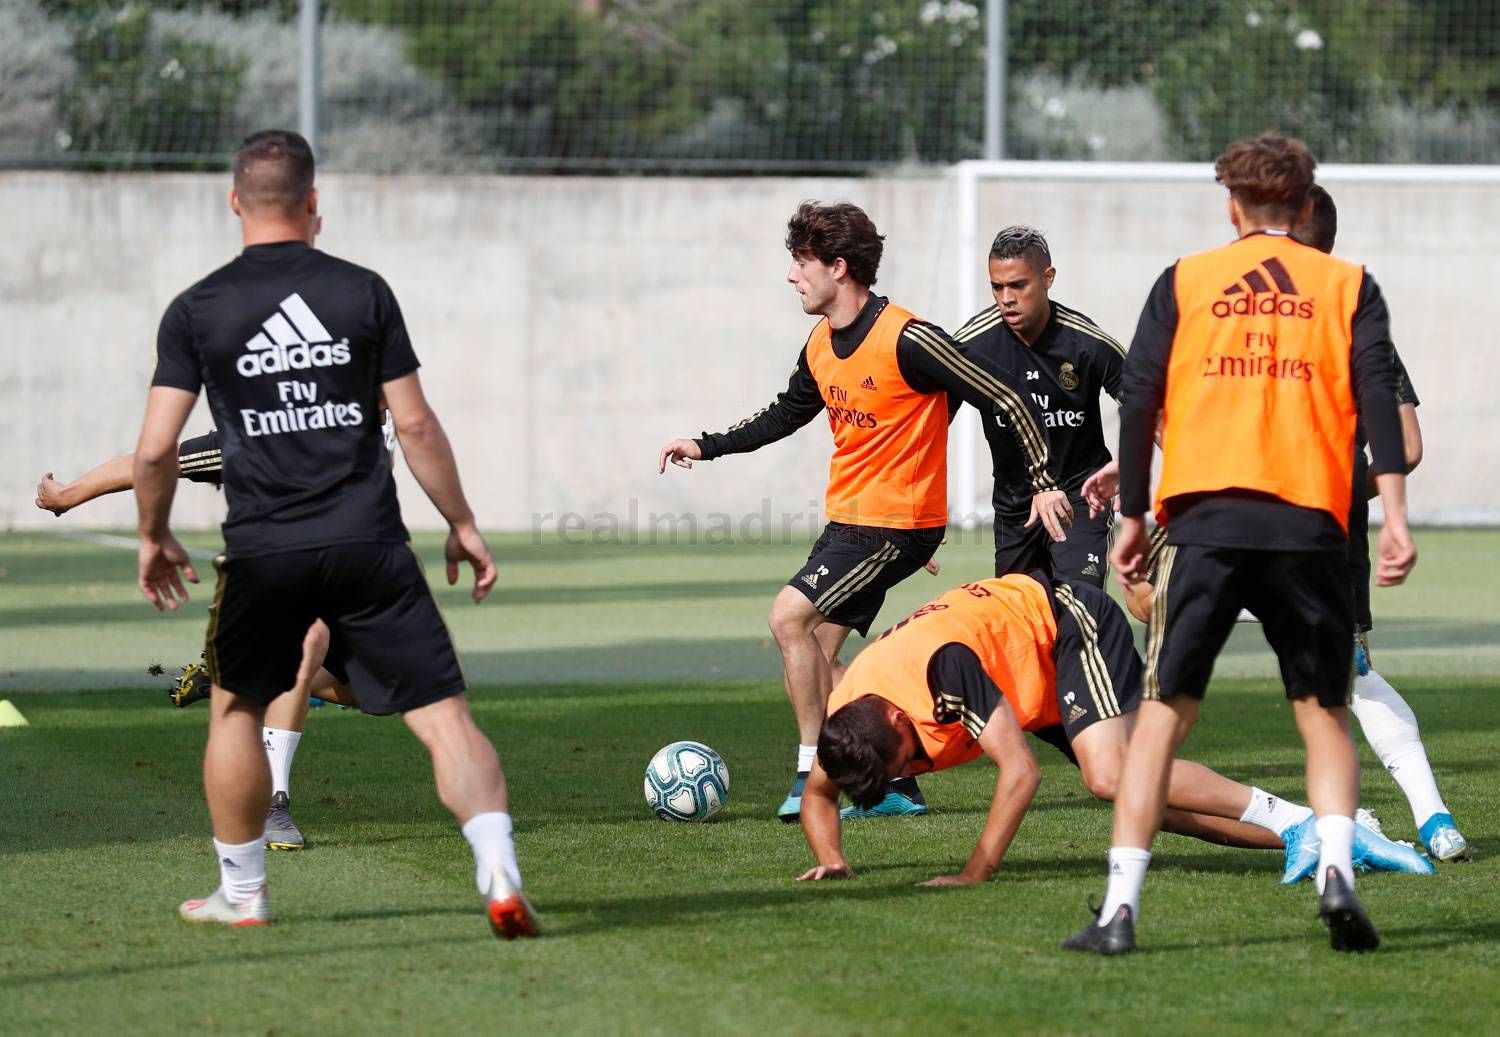 Real Madrid - Entrenamiento del Real Madrid  - 10-10-2019